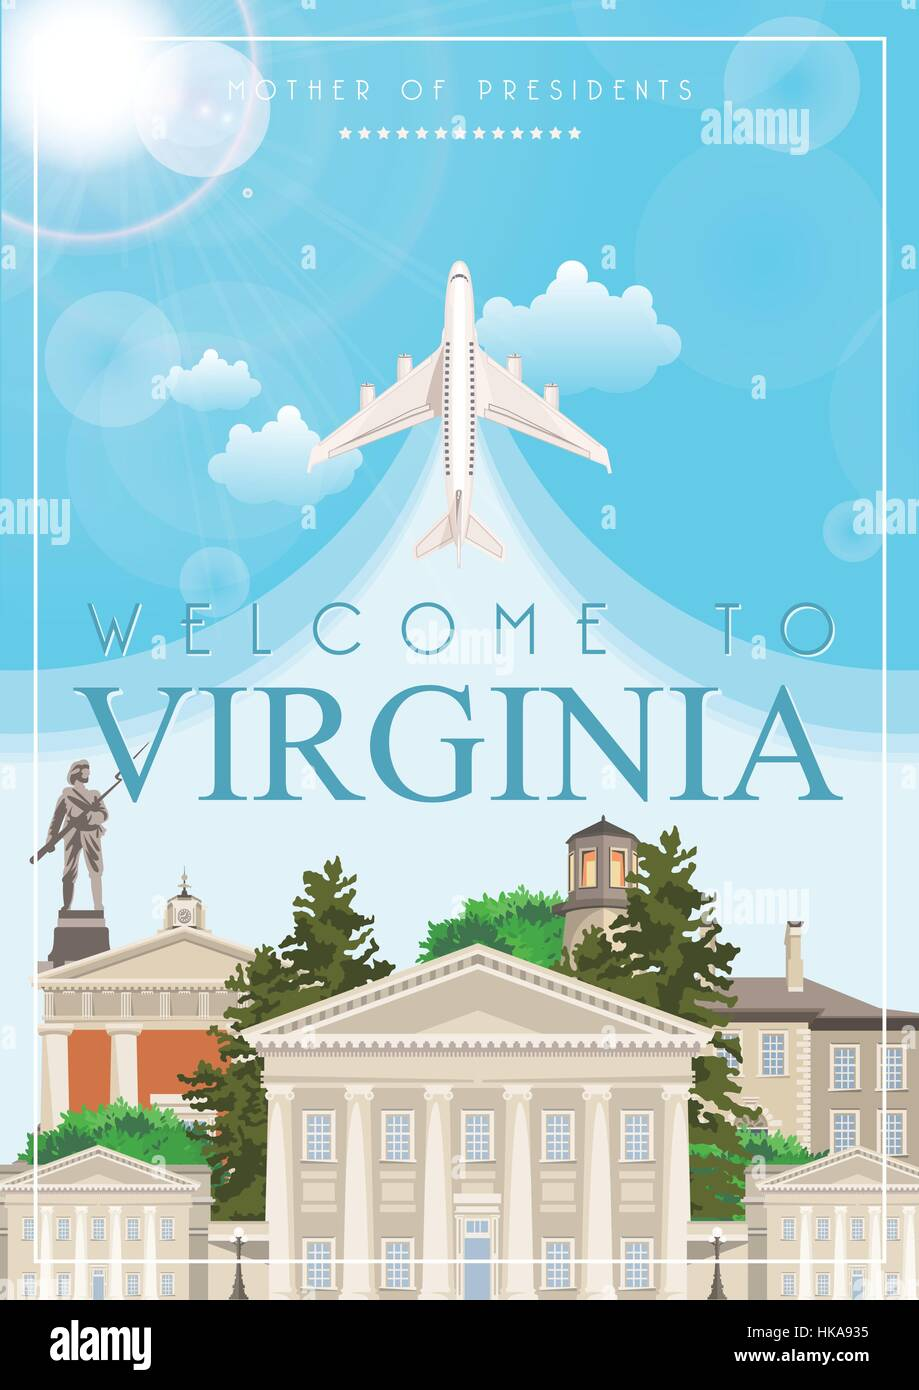 Virginia vector american poster. USA travel illustration. United States of America colorful greeting card. Stock Vector